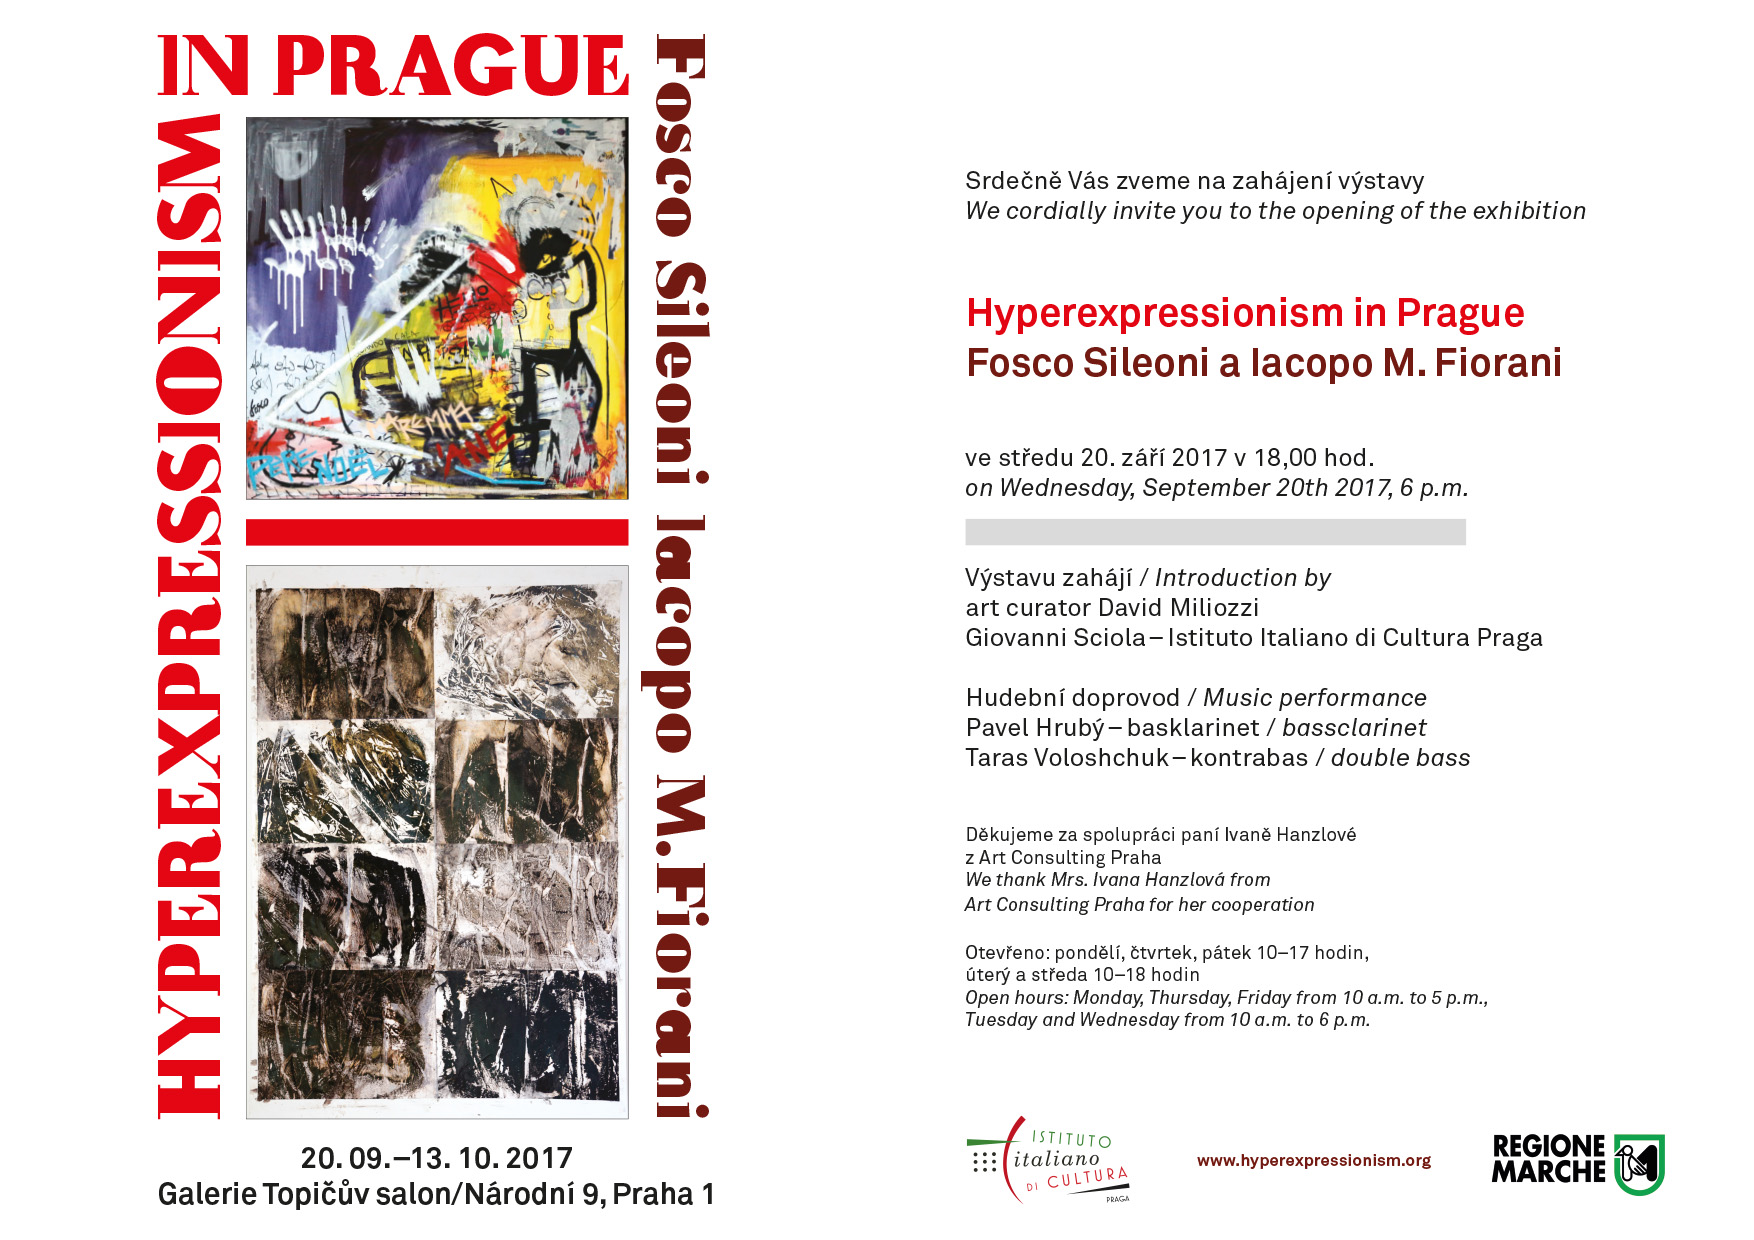 Hyperexpressionism in Prague